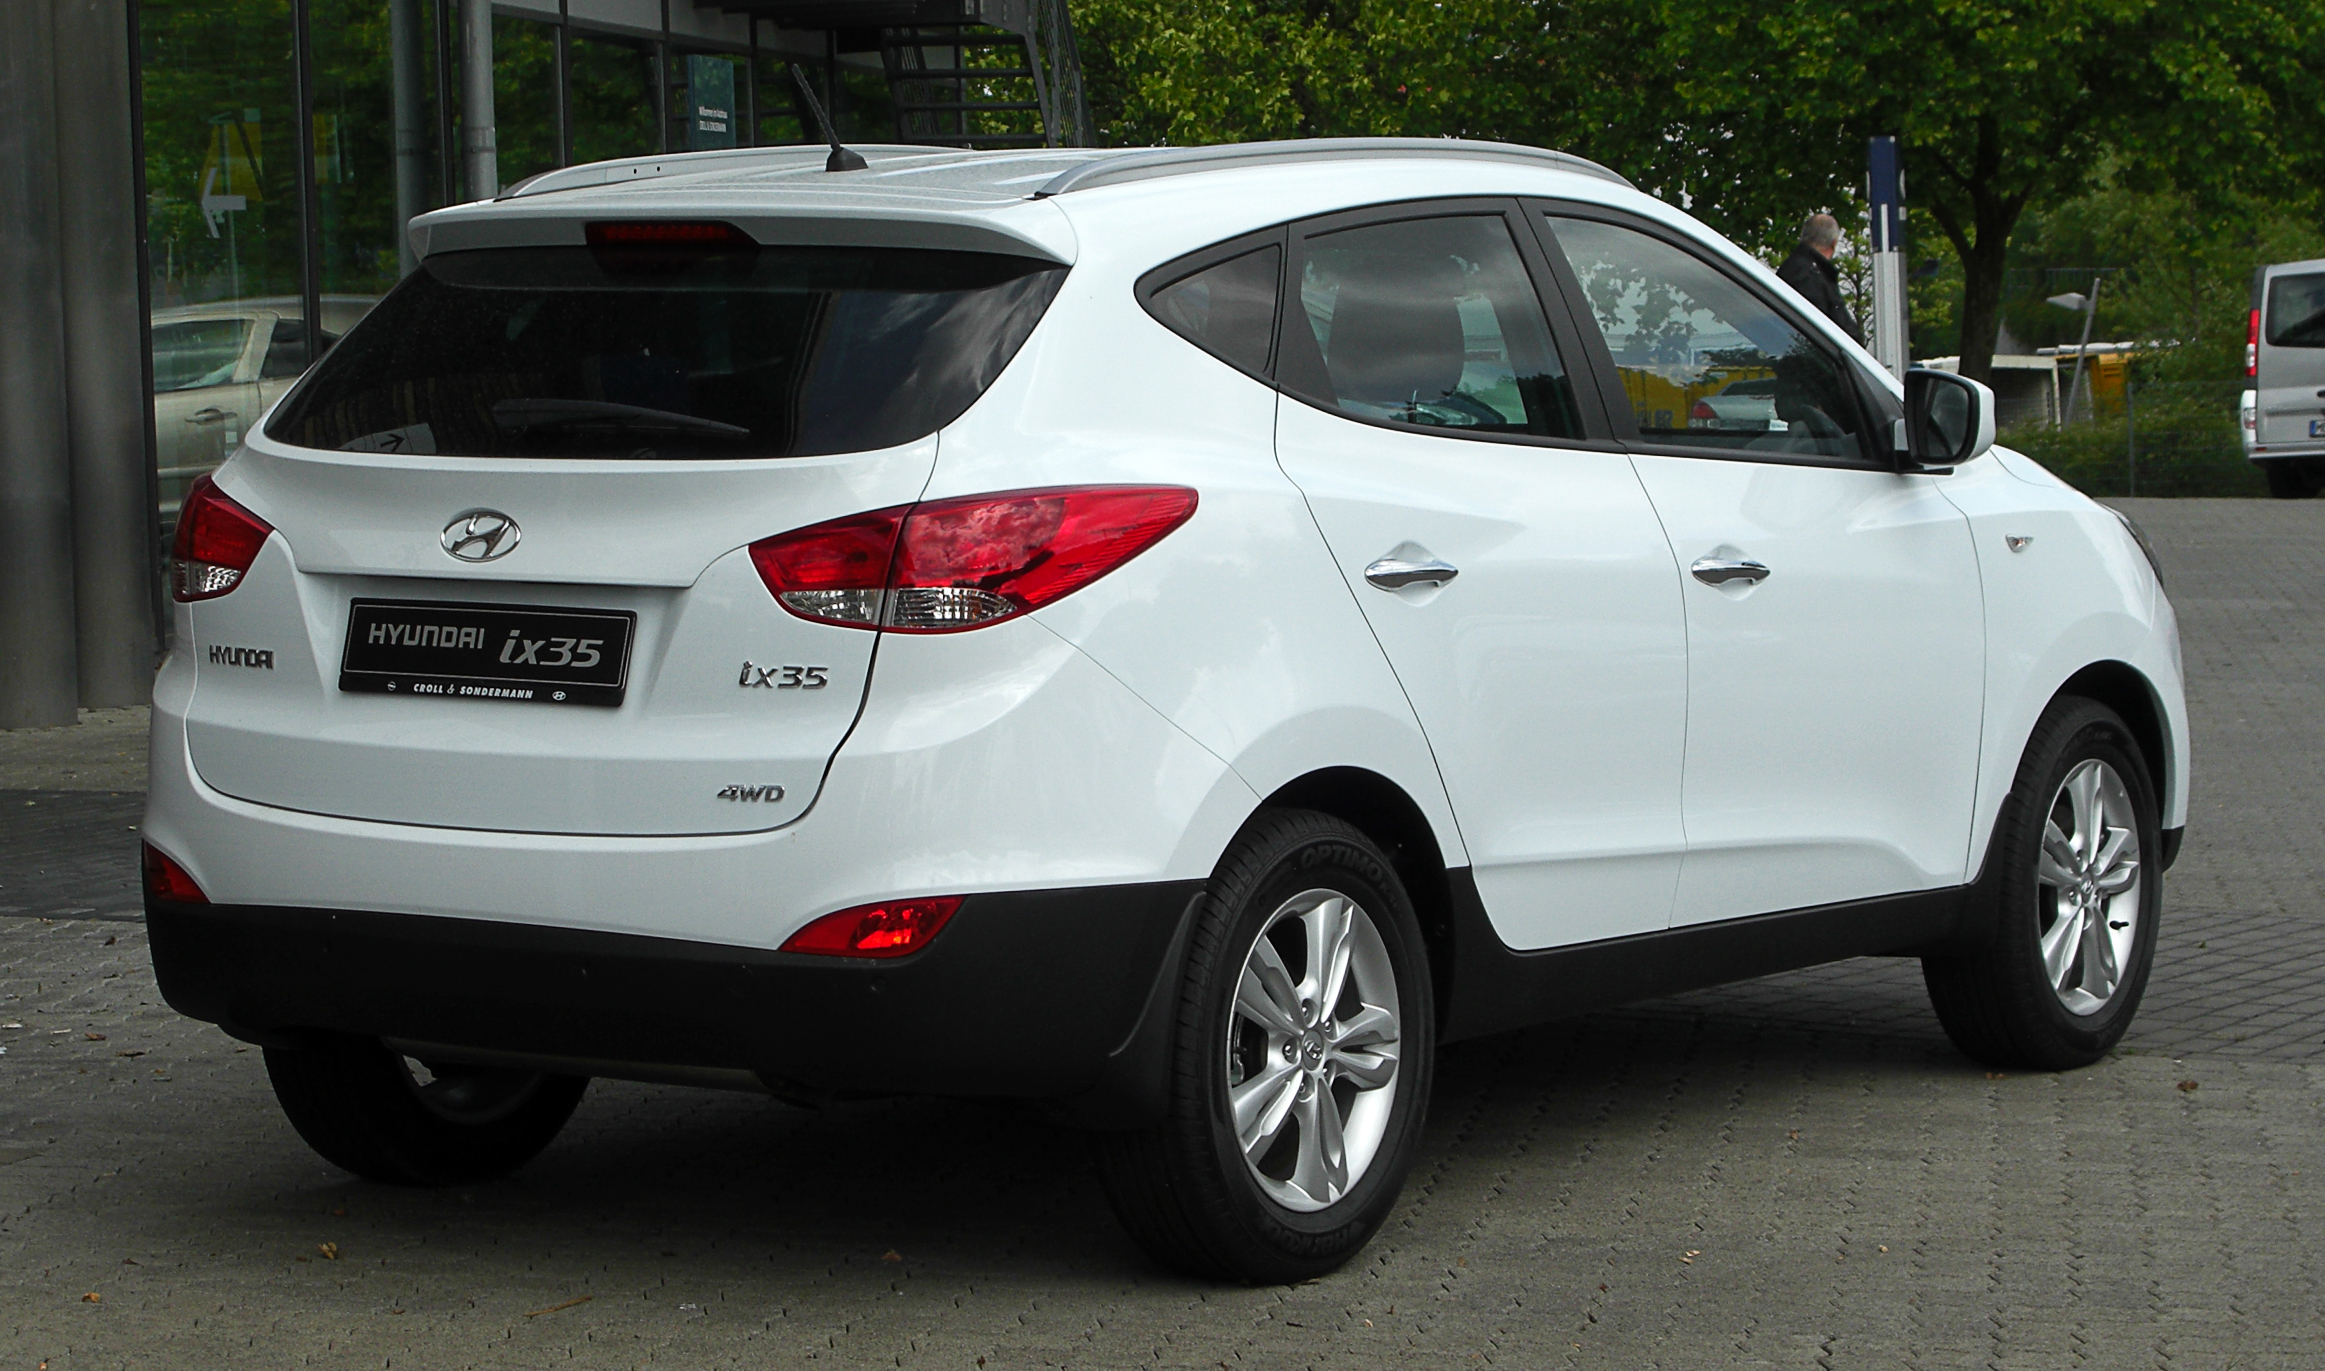 Hyundai iX35 in white